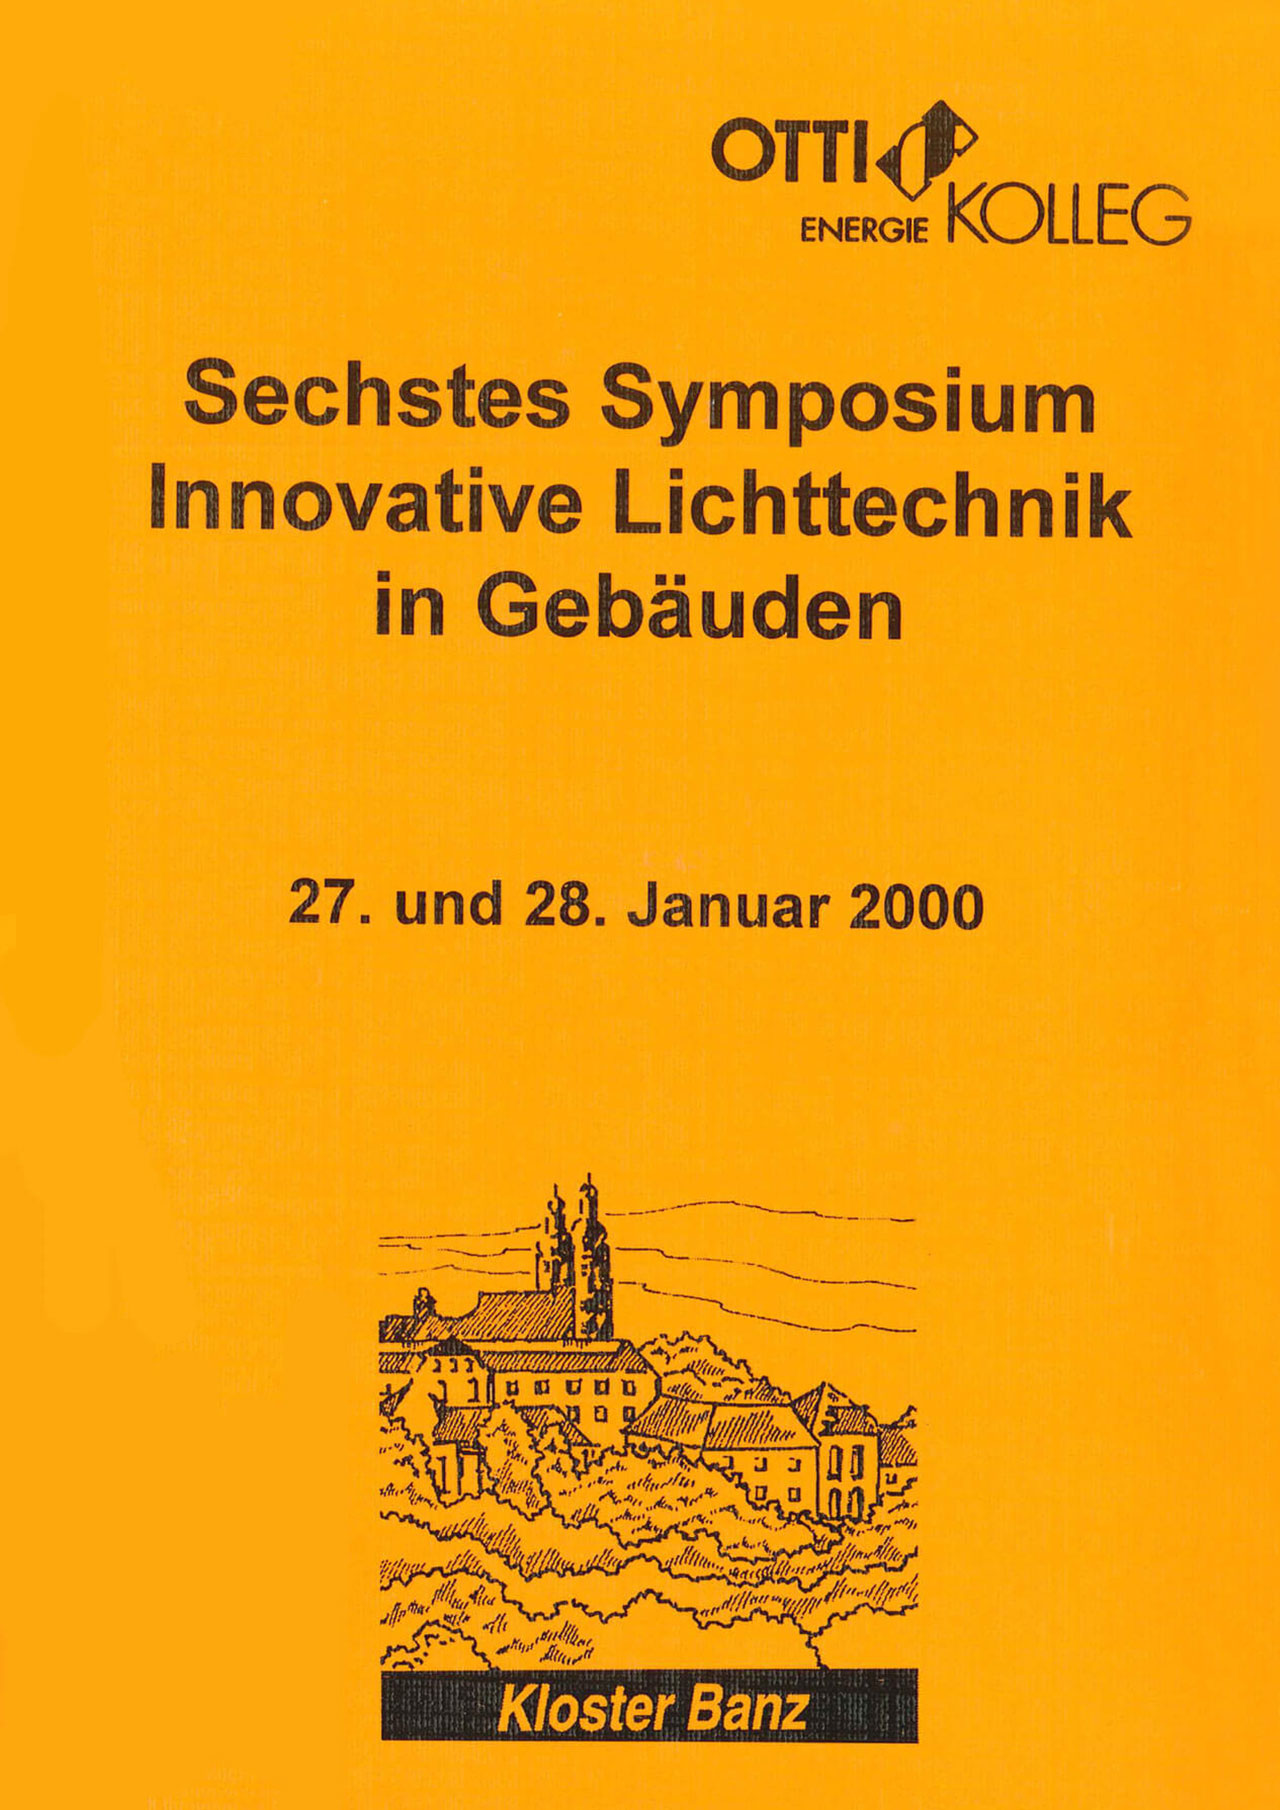 Innovative Lichttechnik in Gebäuden